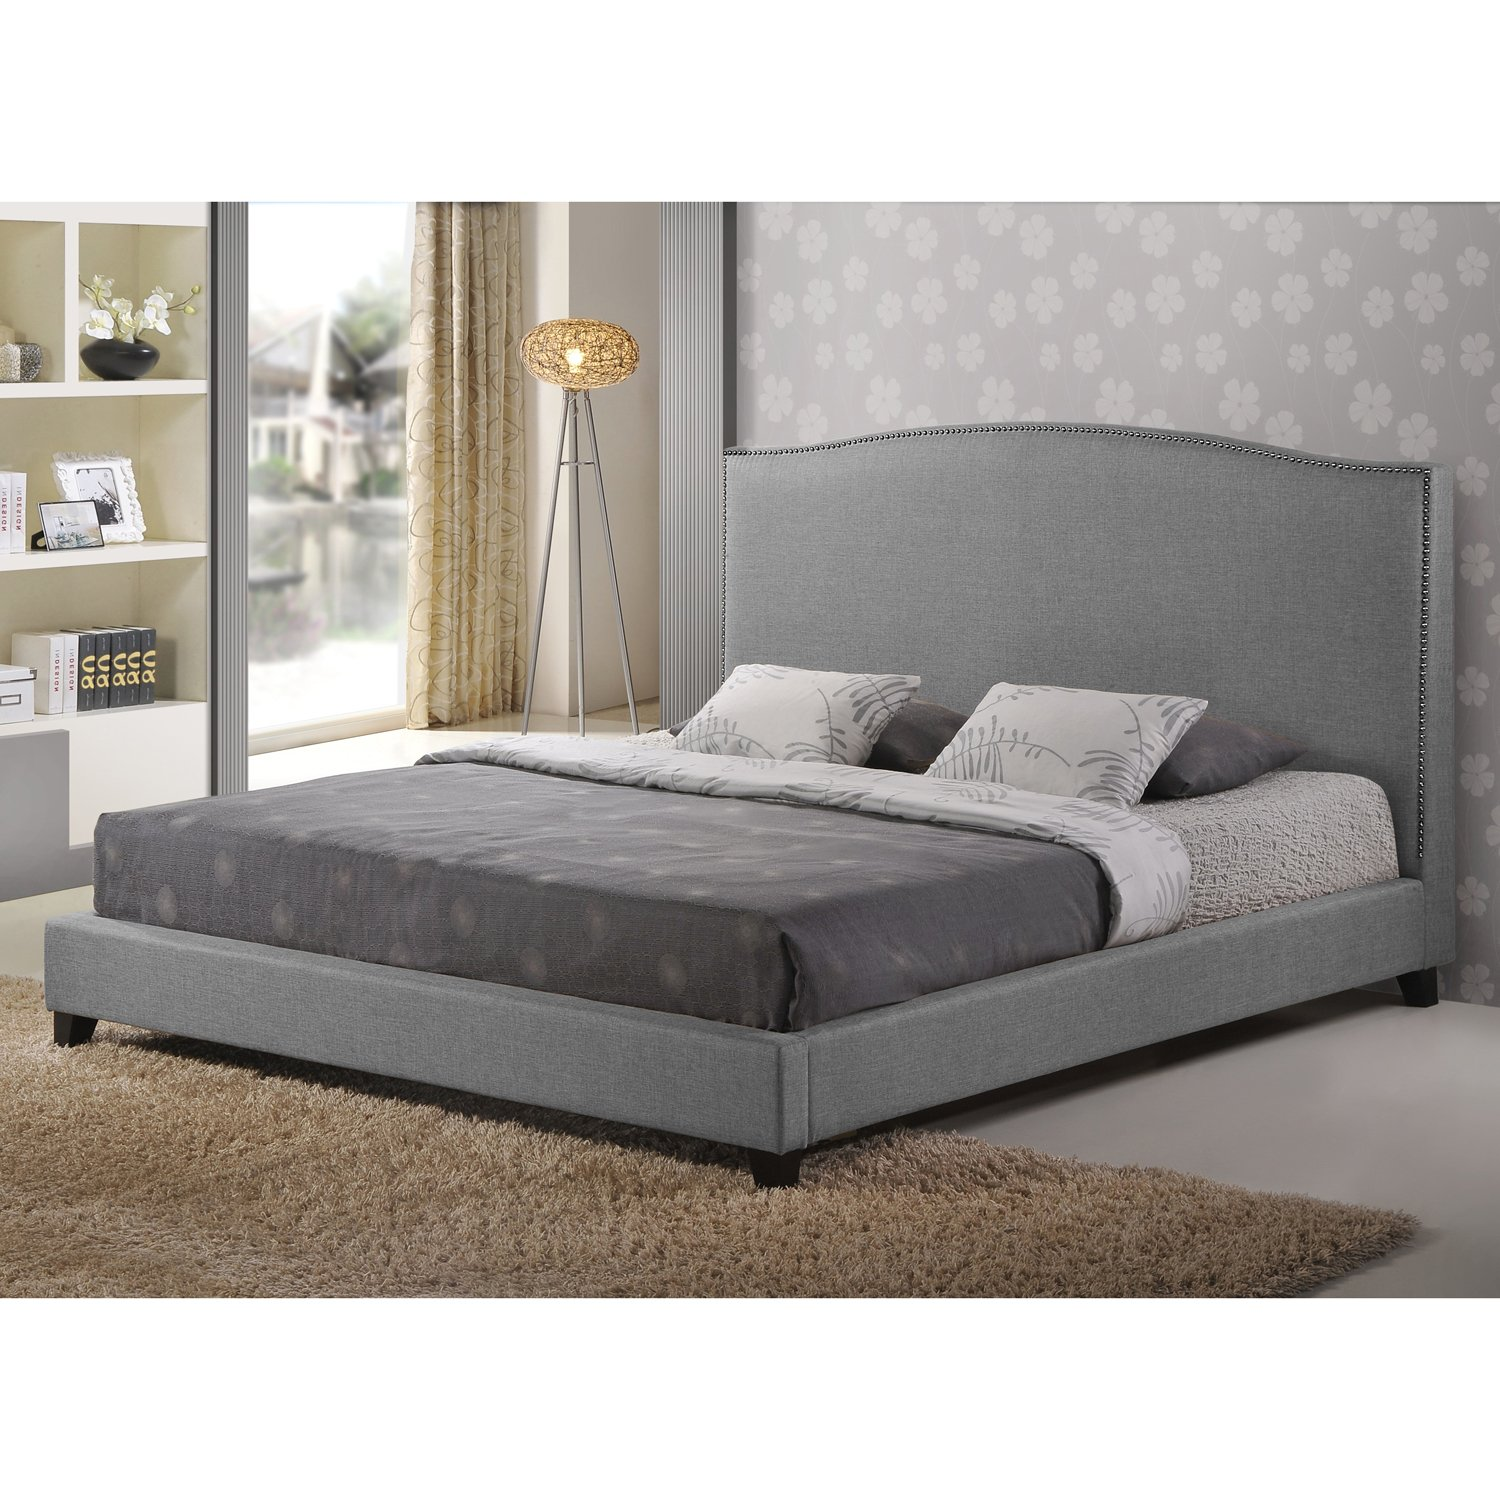 outstanding bed king also collection storage drawer with platform frame images ashford